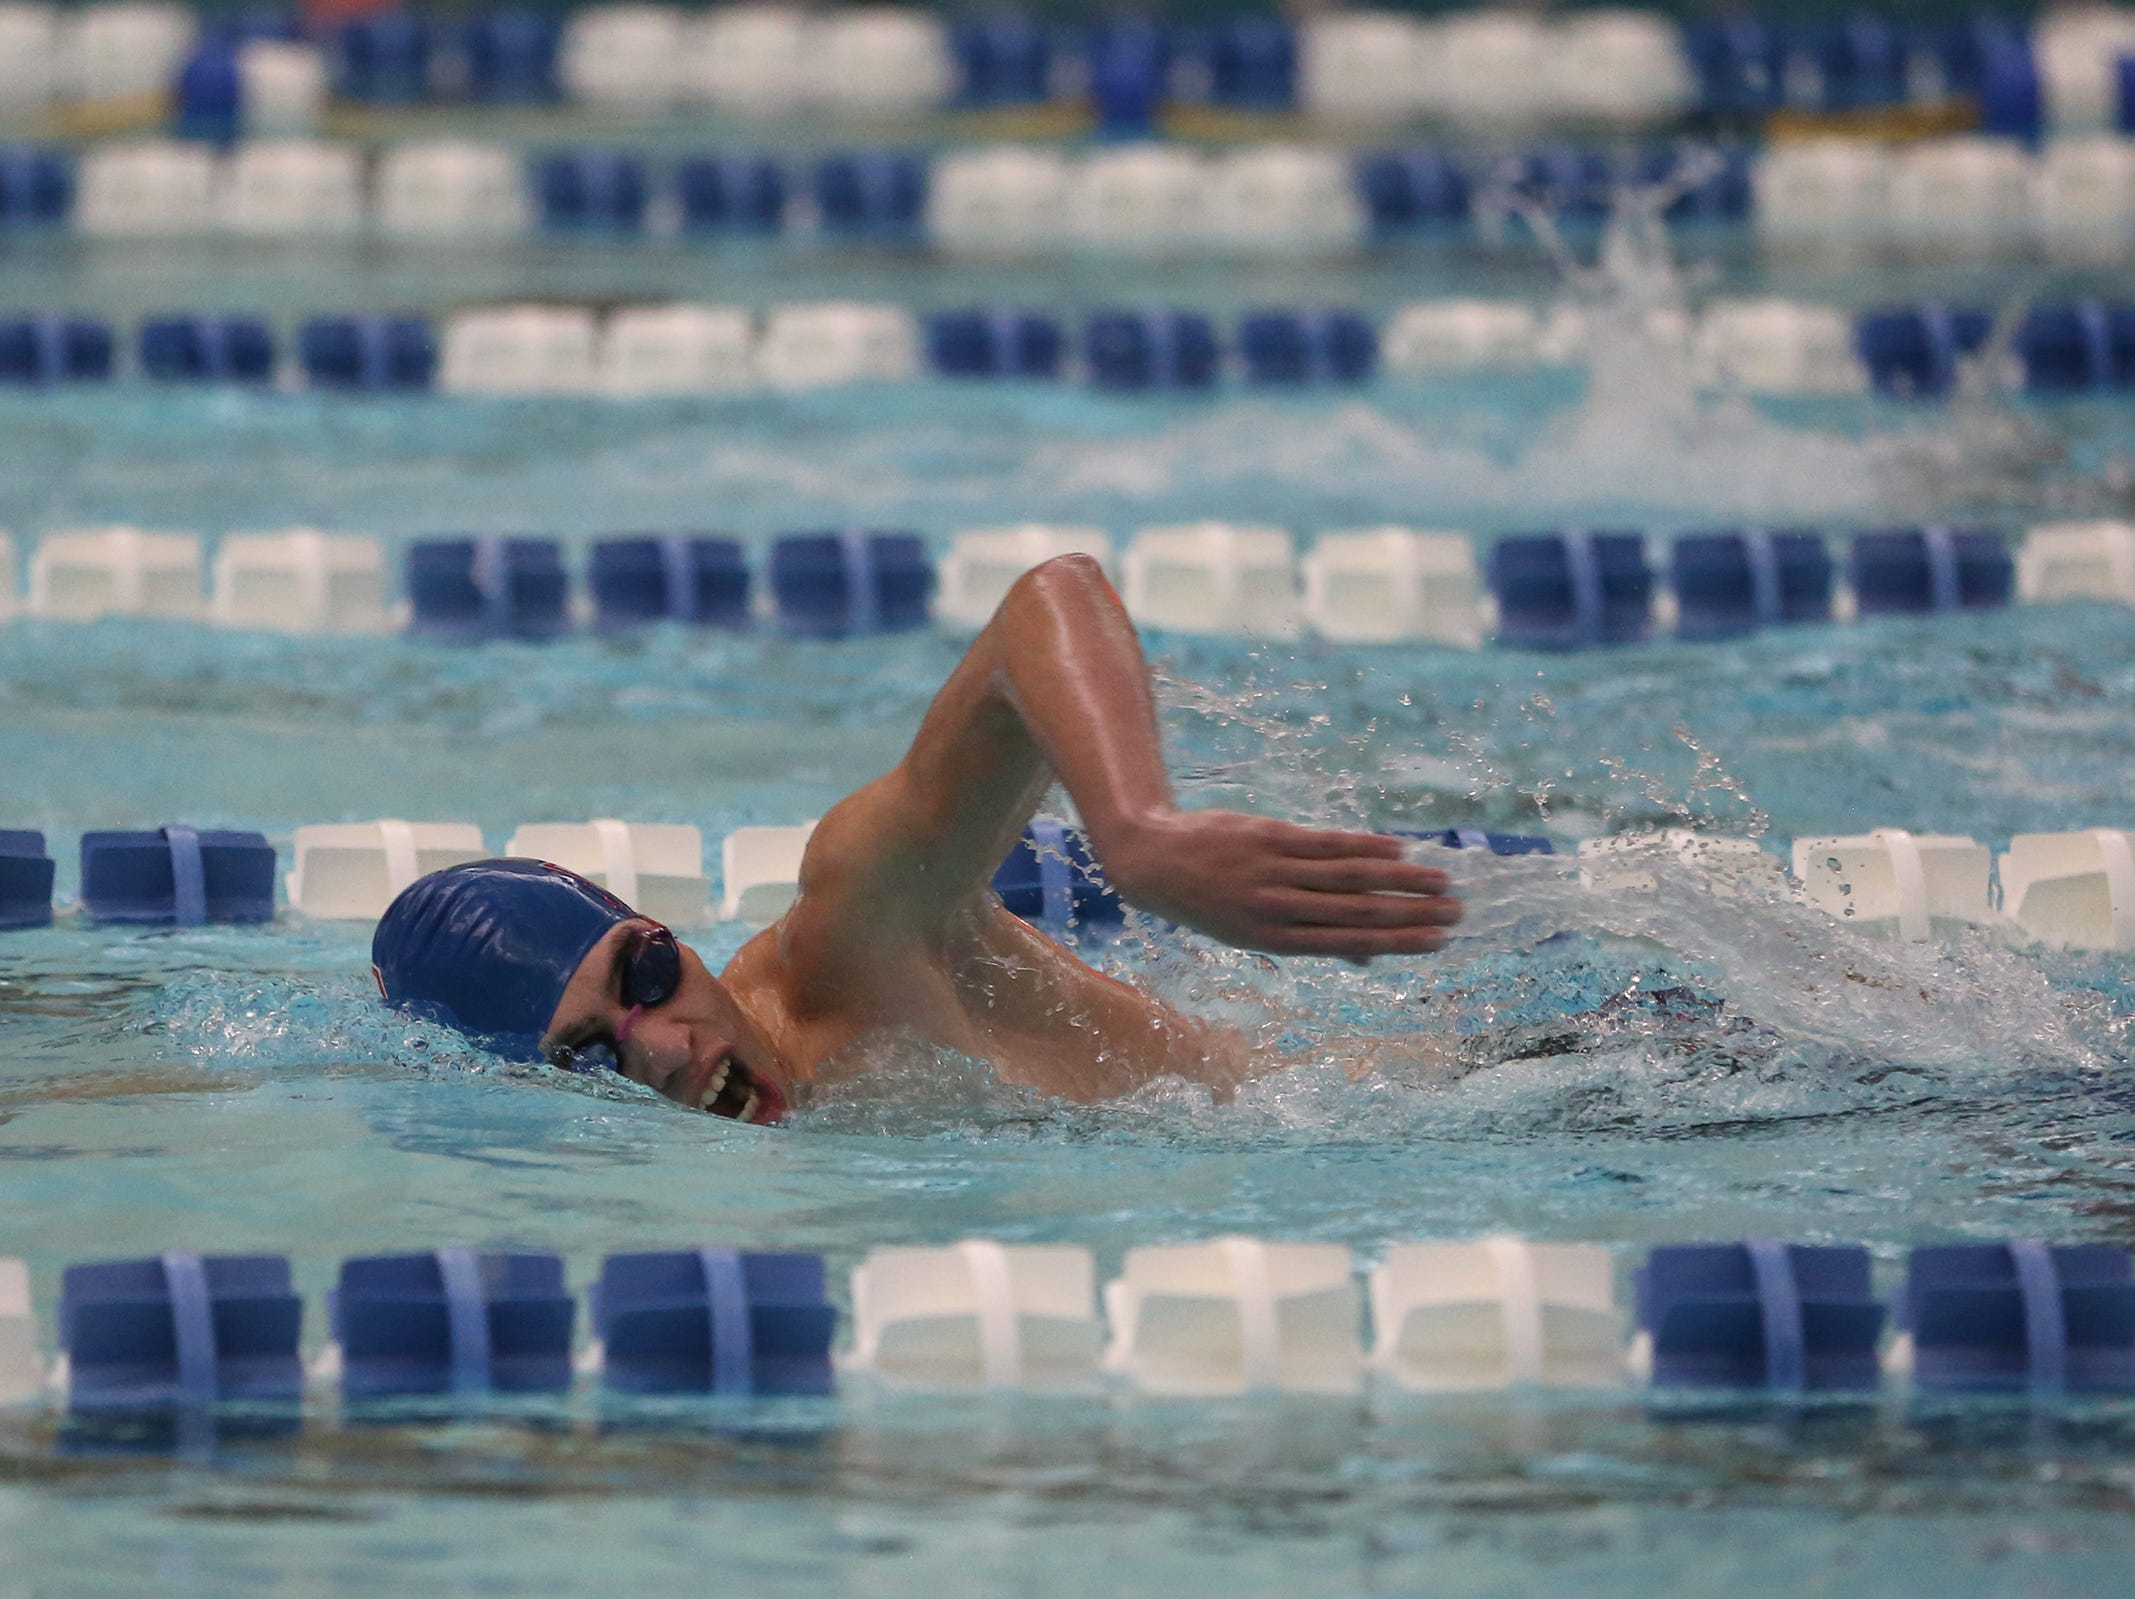 South Salem senior Jordan Creedence competes in the boys 500-yard freestyle at the OSAA 6A Mountain Valley Conference swimming championships at the Kroc Center in Salem, Oregon on Friday, Feb. 8, 2019.